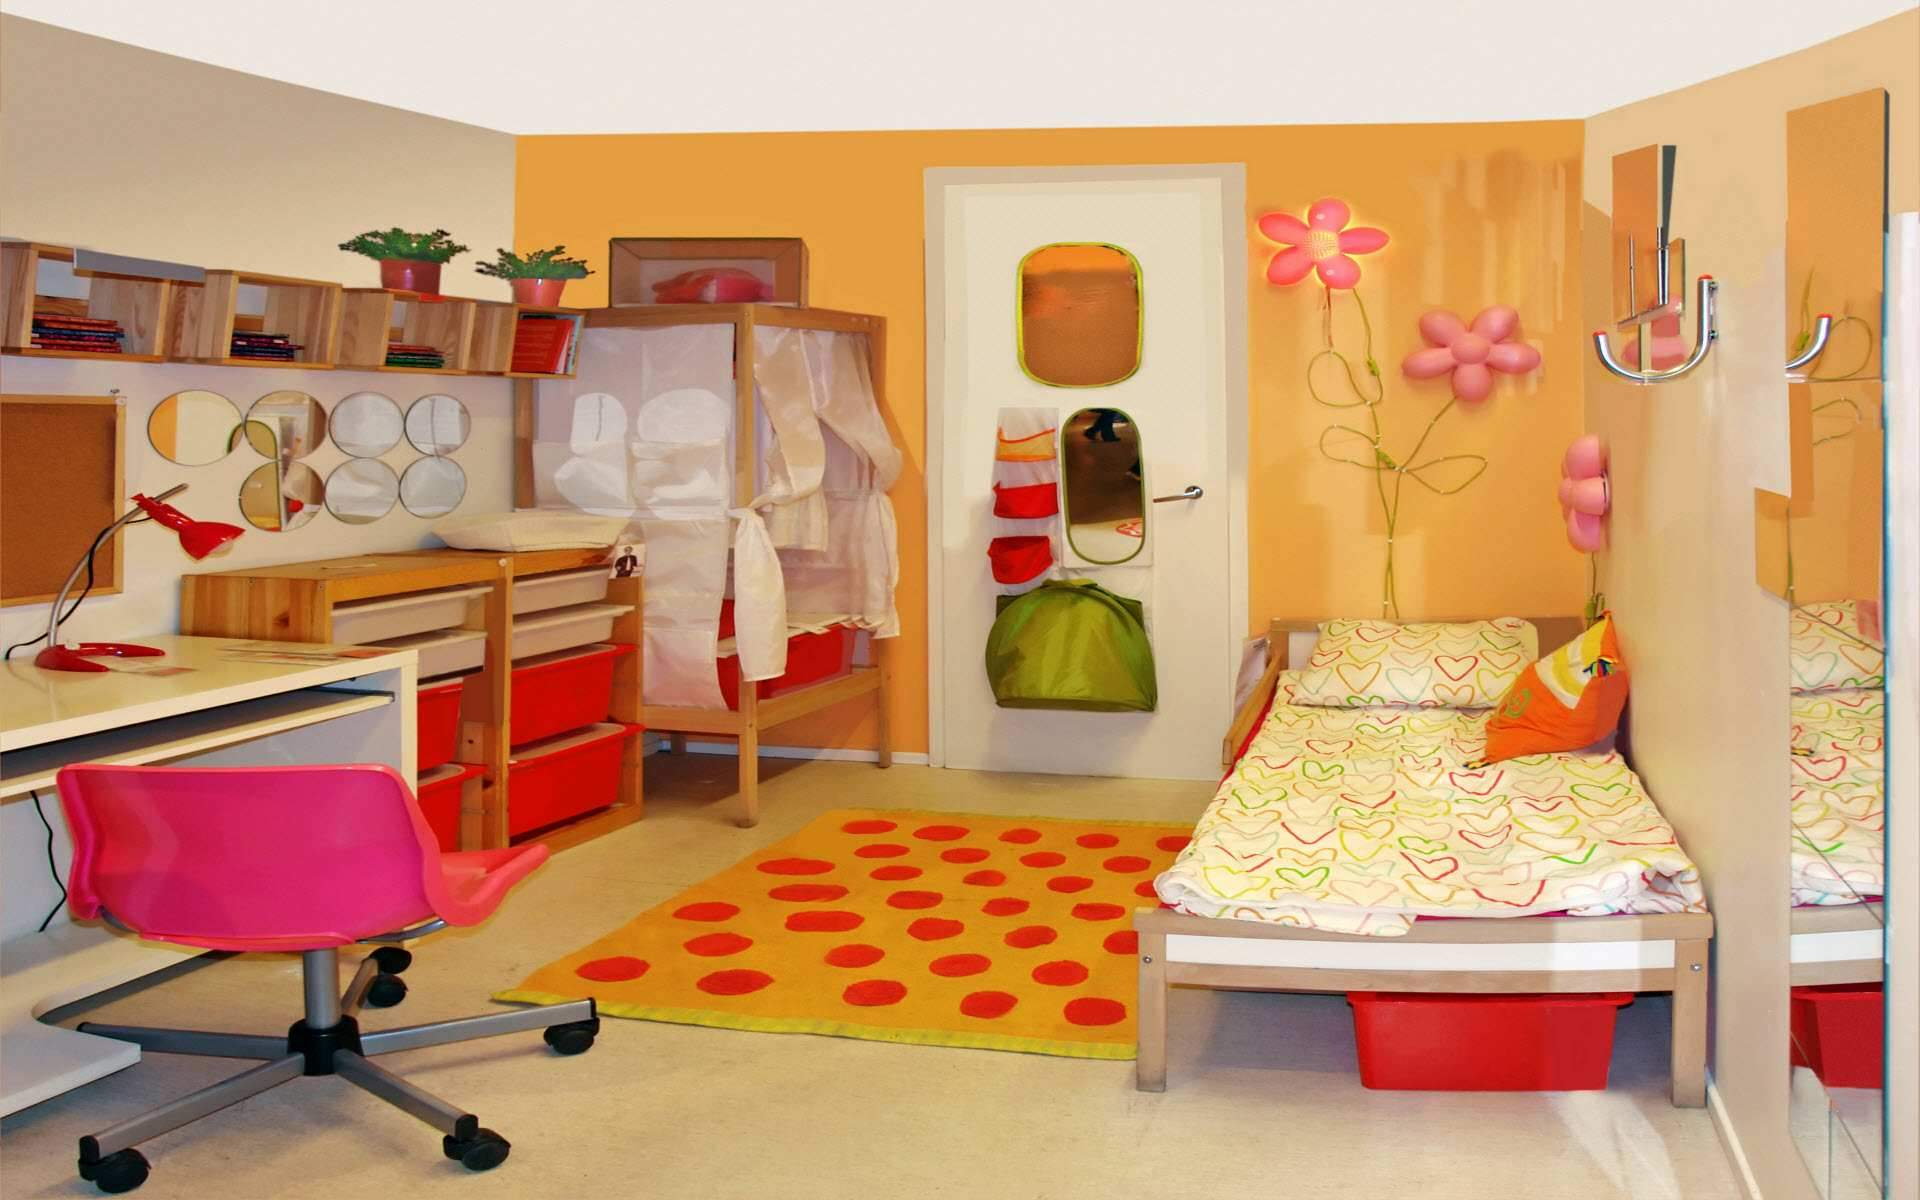 Unique small kids room decorating ideas image 012 small room decorating ideas - Creative home interior design ideas ...